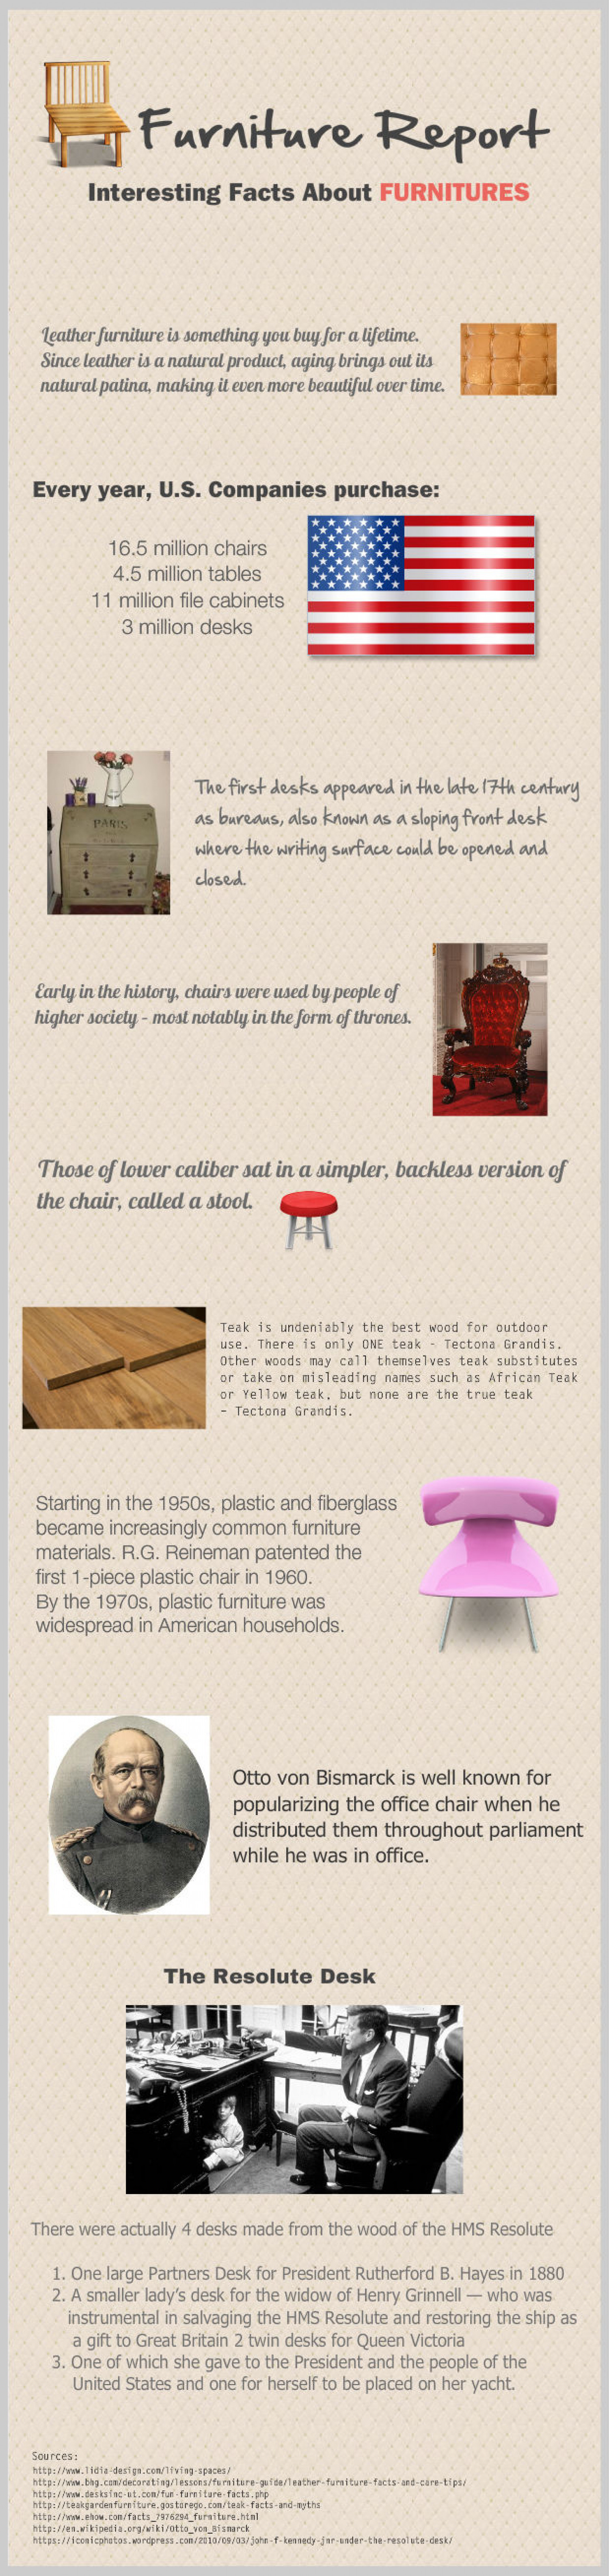 Furniture Report: Interesting Facts About Furnitures Infographic